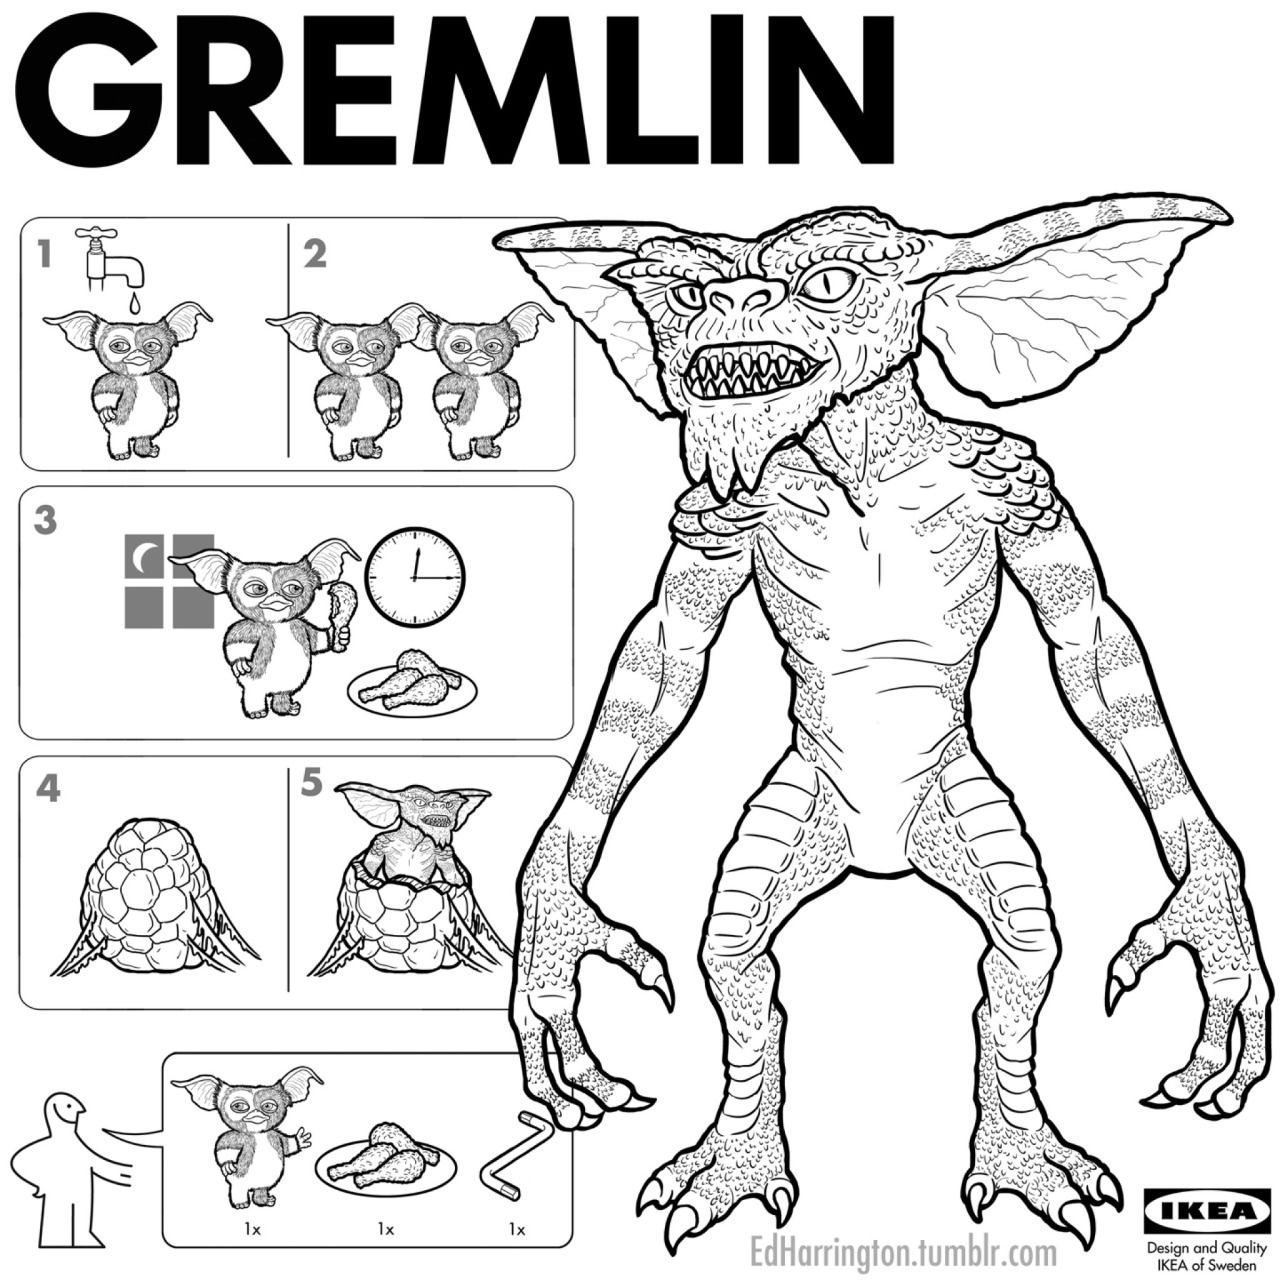 Gremlin Ikea Instructions By Ed Harrington